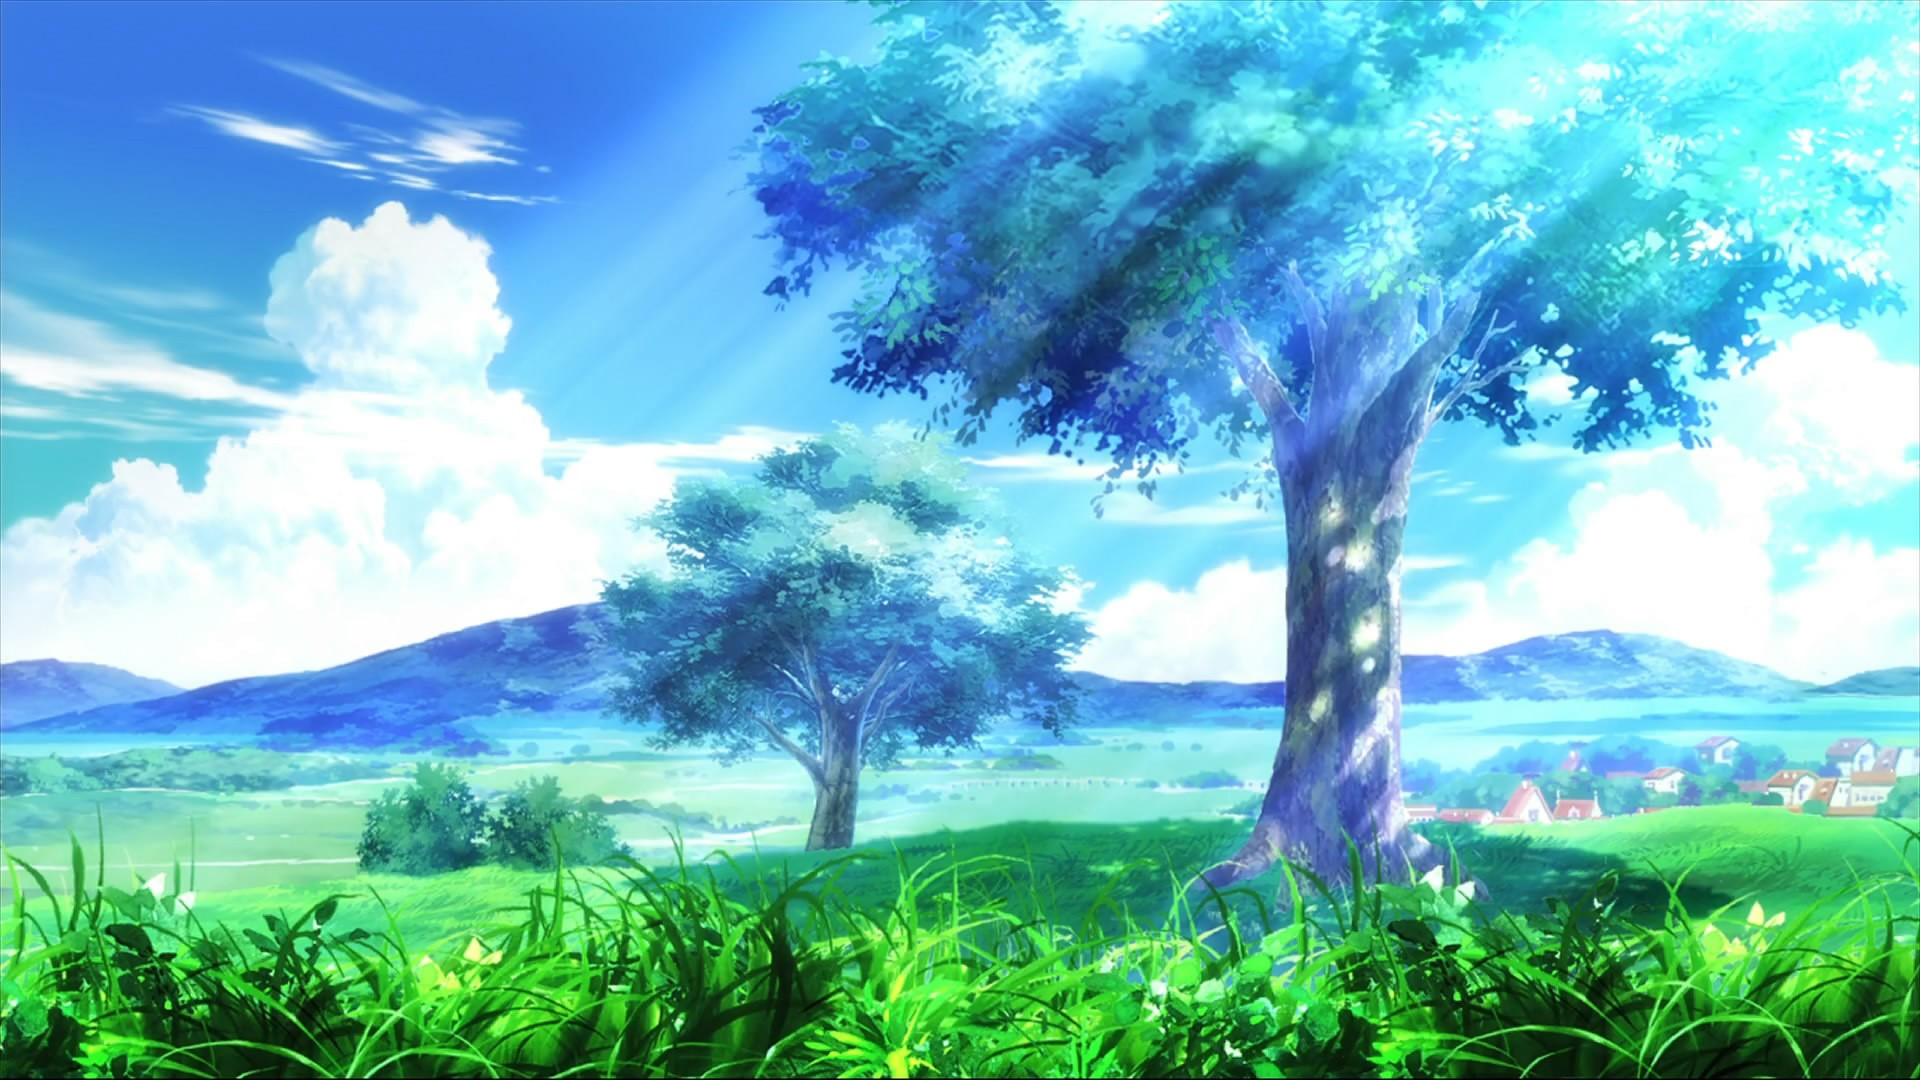 76 anime backgrounds download free amazing hd - Download anime wallpaper hd for android ...